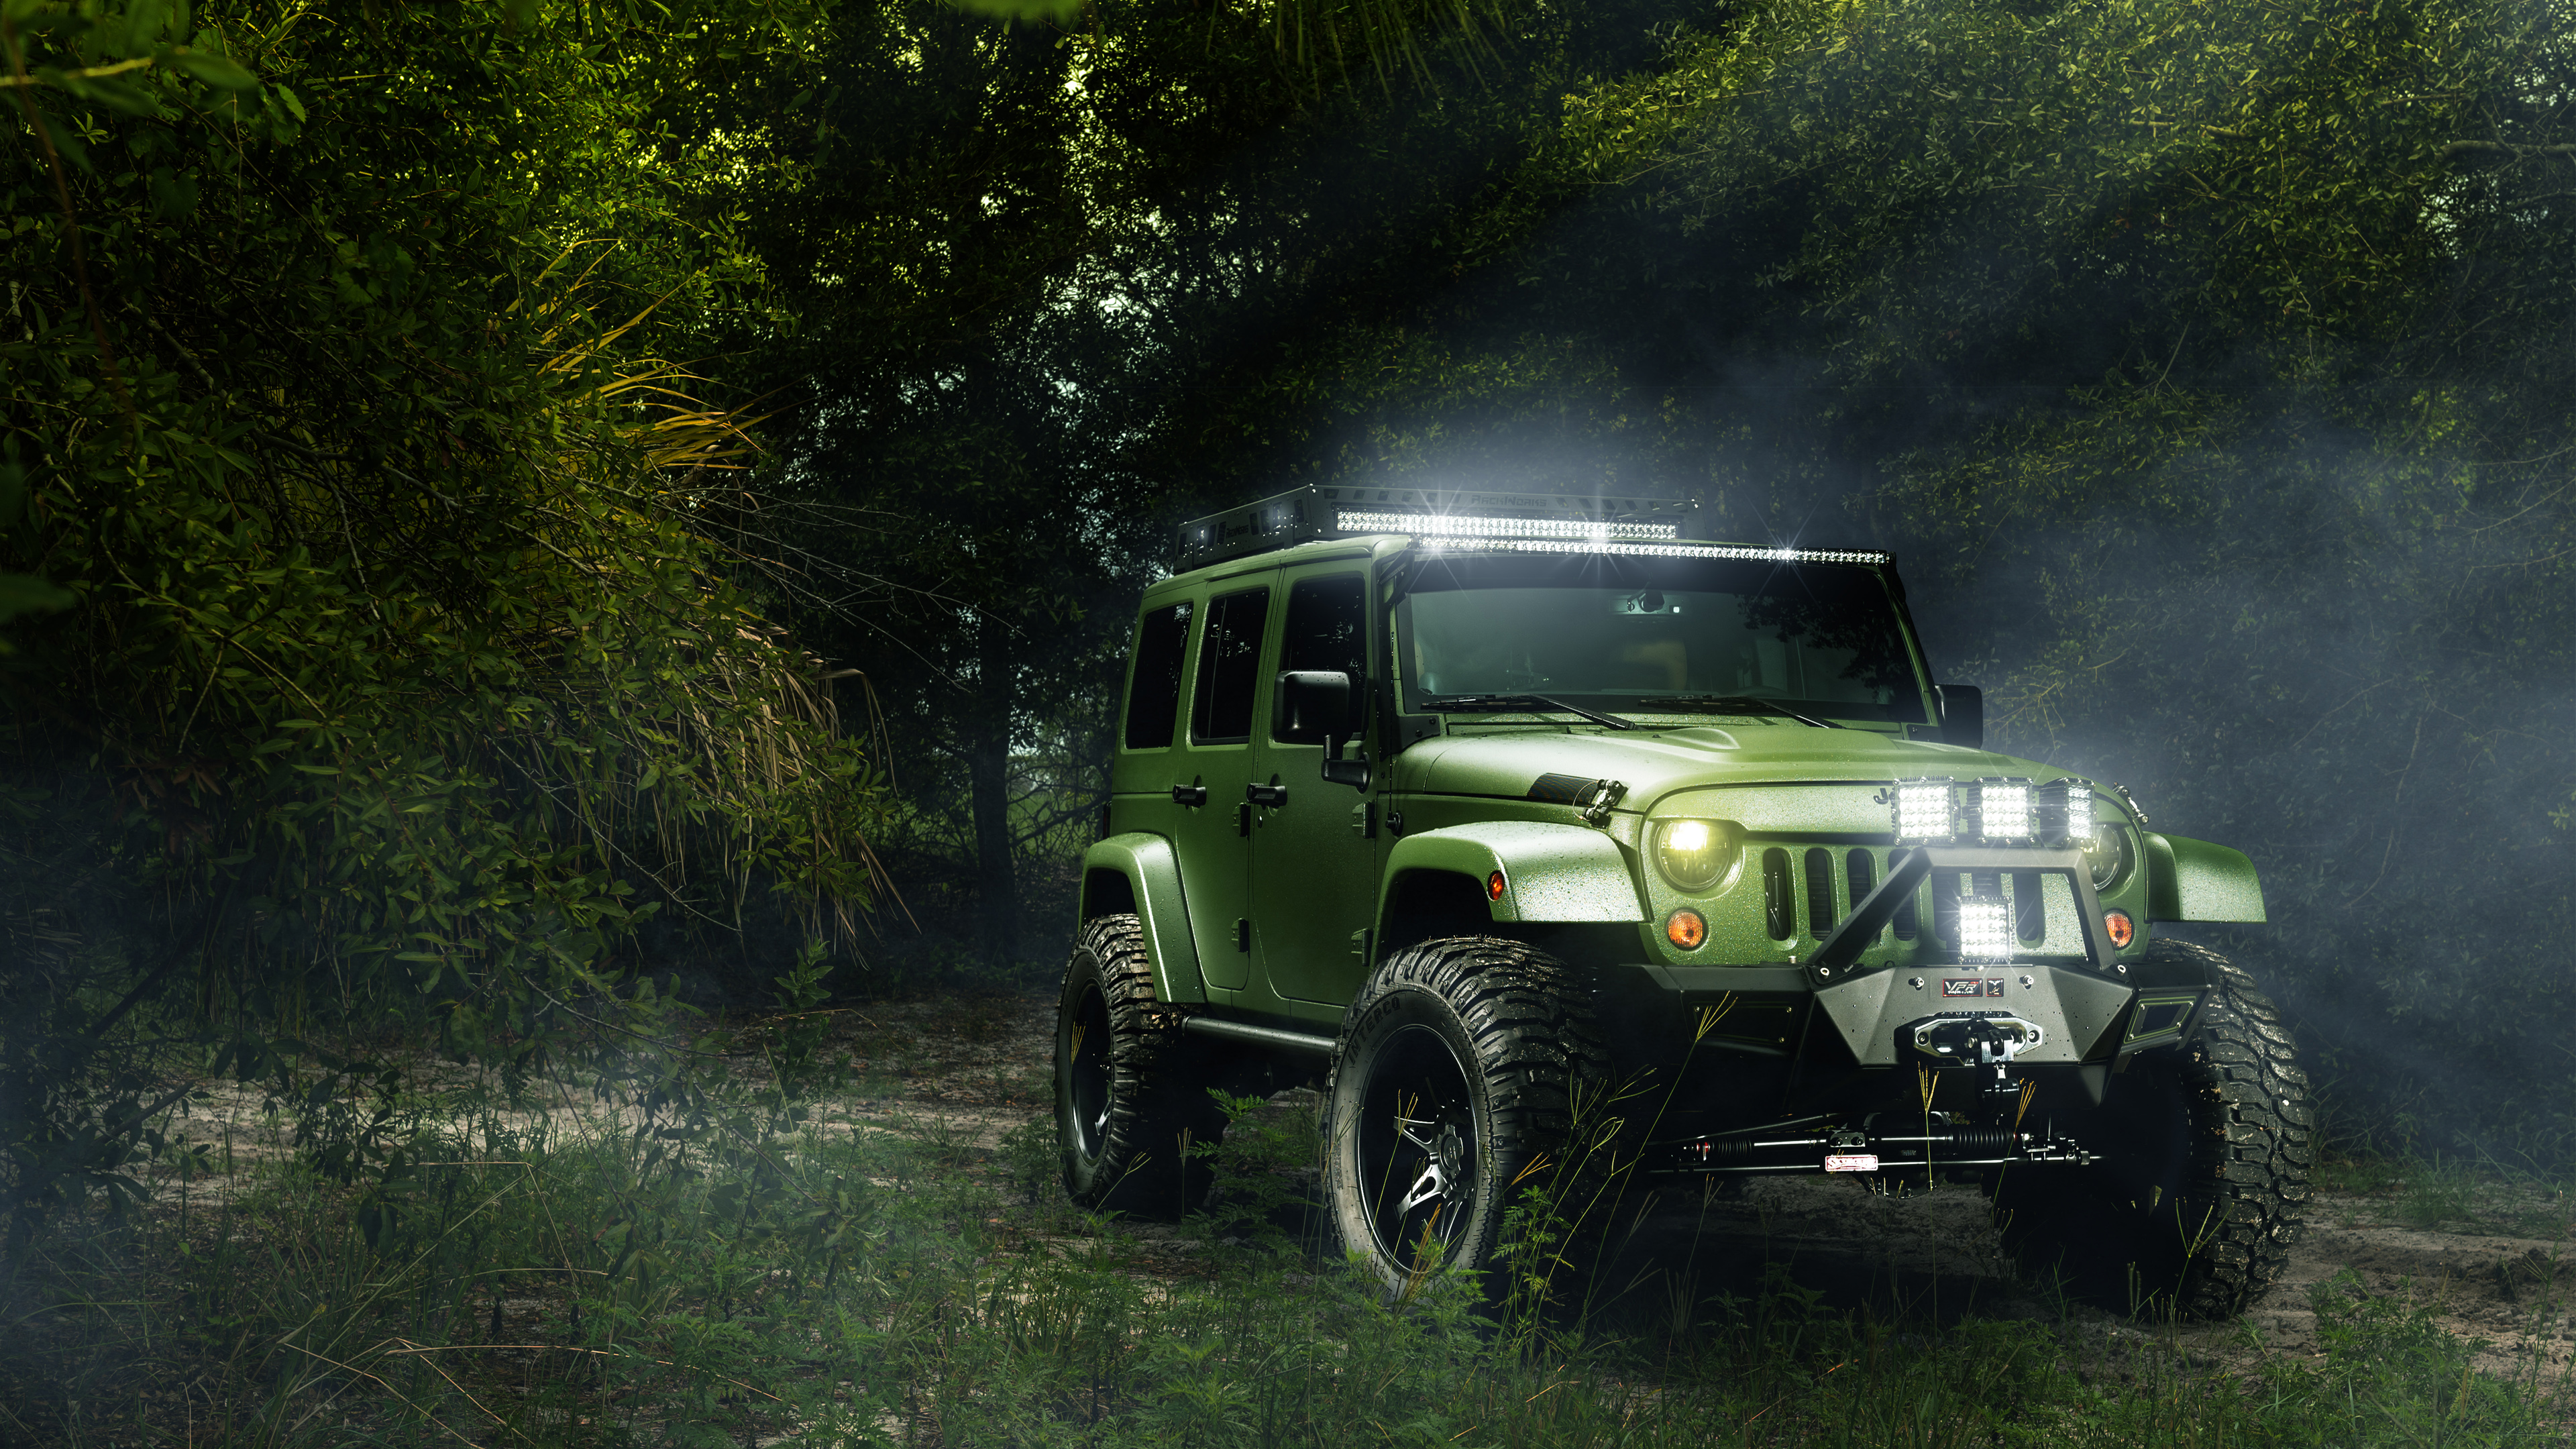 Jeep Wrangler Wallpaper Hd Car Wallpapers Id 5570